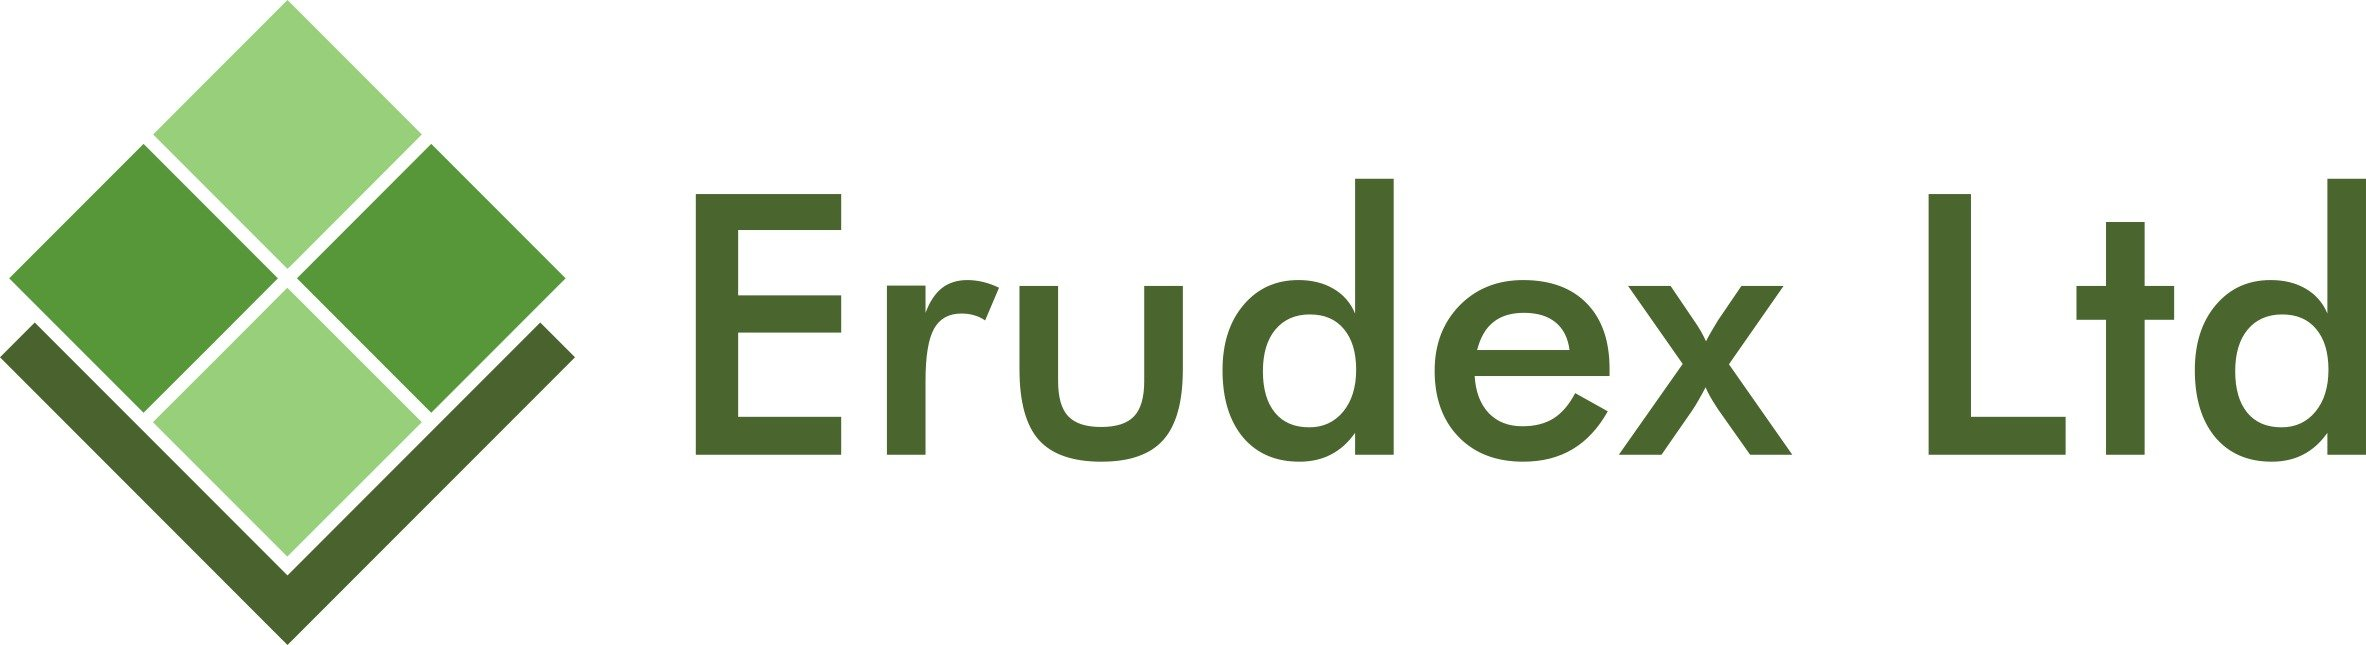 Erudex Ltd